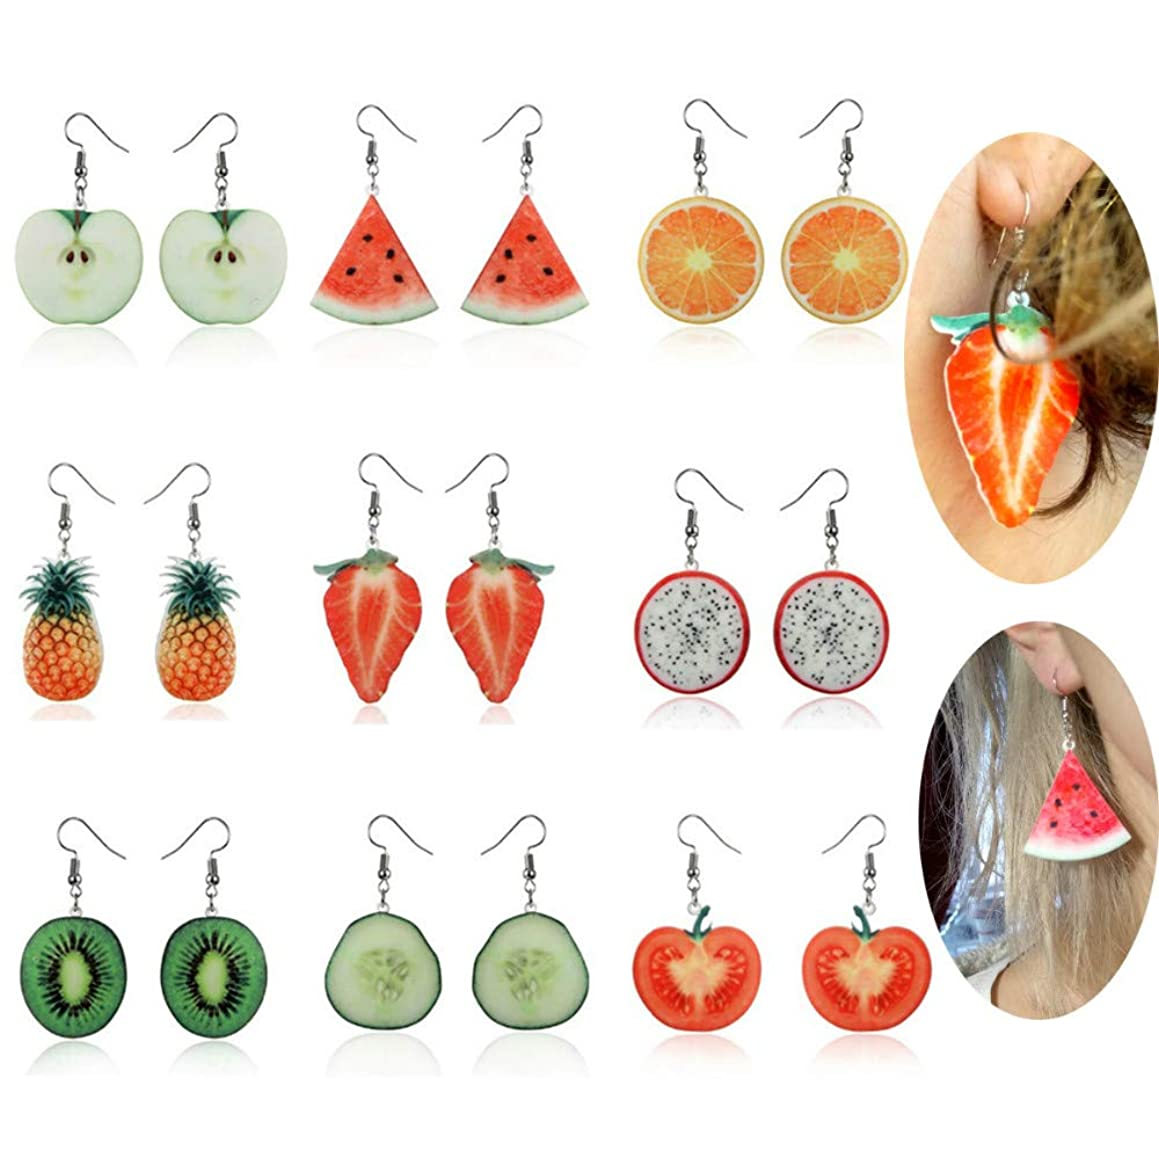 MissDaisy 9 Pairs Creative Cute Fruits Acrylic Earrings Funny Lifelike Fruits Drop Dangle Earrings for Women Girls